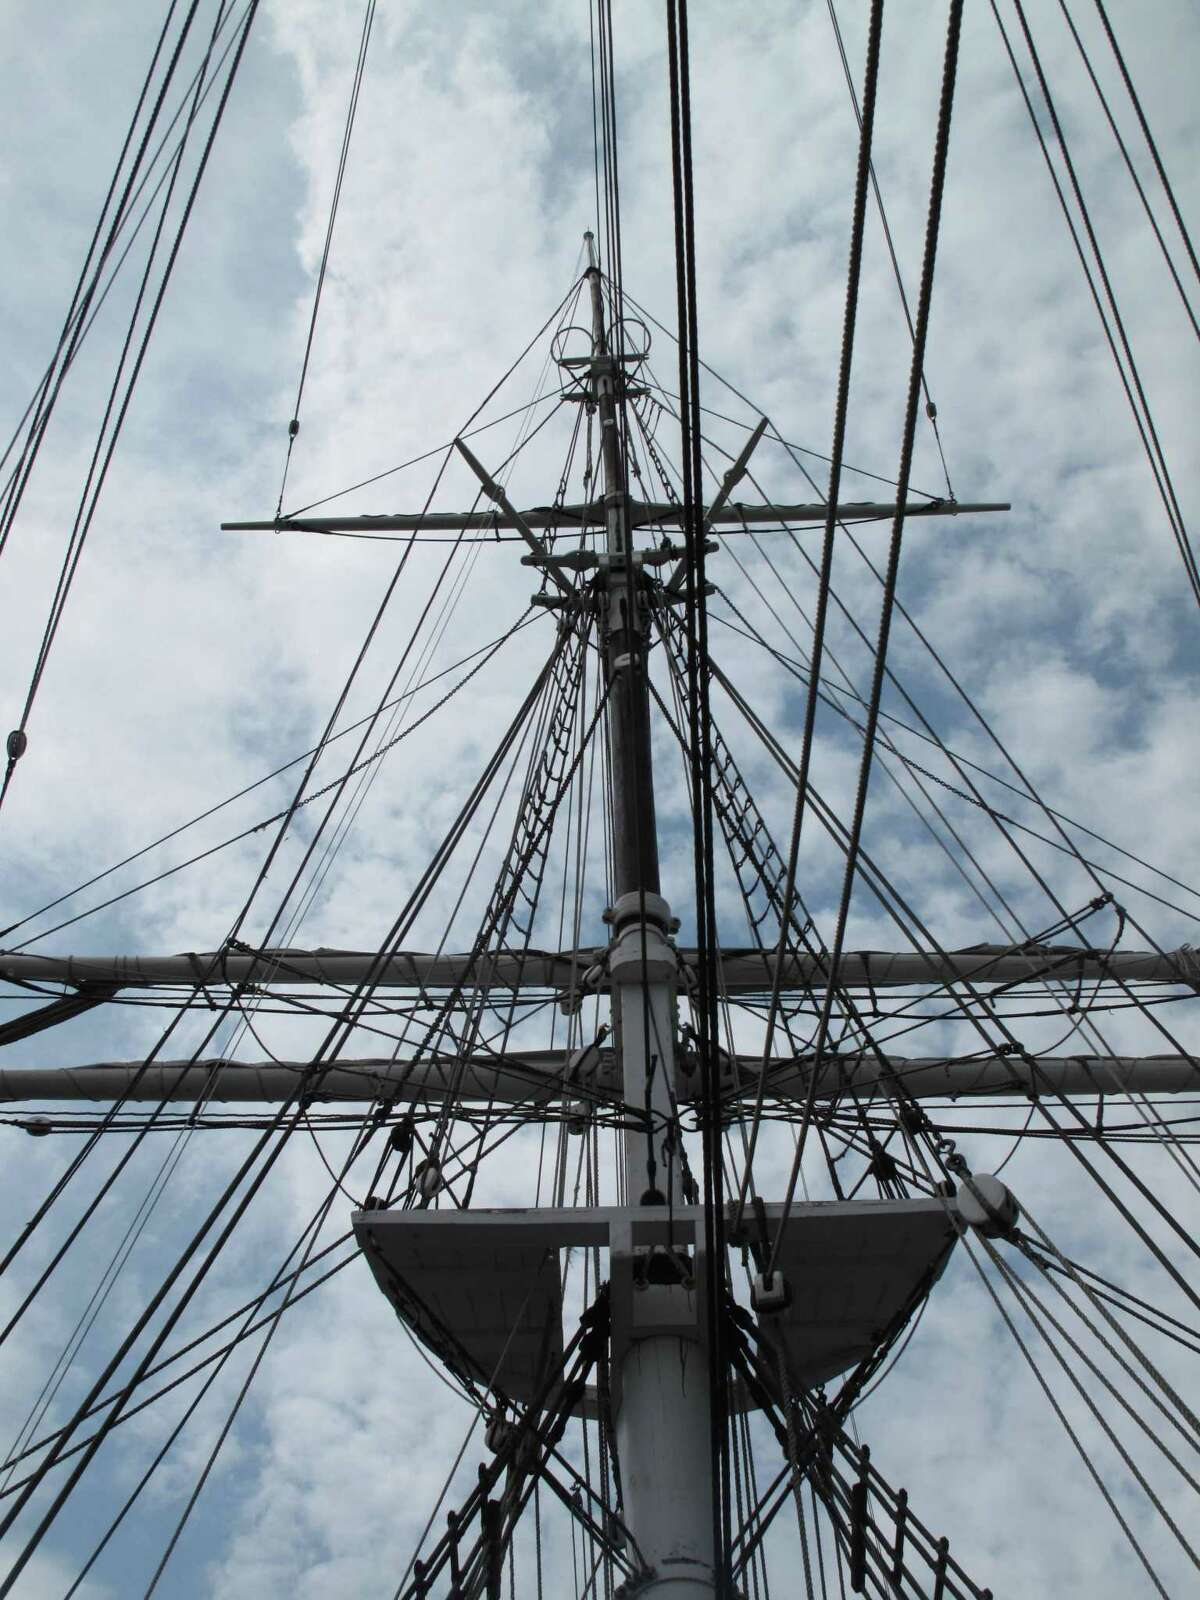 Mystic Seaport Museum in Mystic, Conn., announced March 27, 2020 that it was laying off nearly 200 employees. The museum is temporarily closed because of the COVID-19 pandemic.